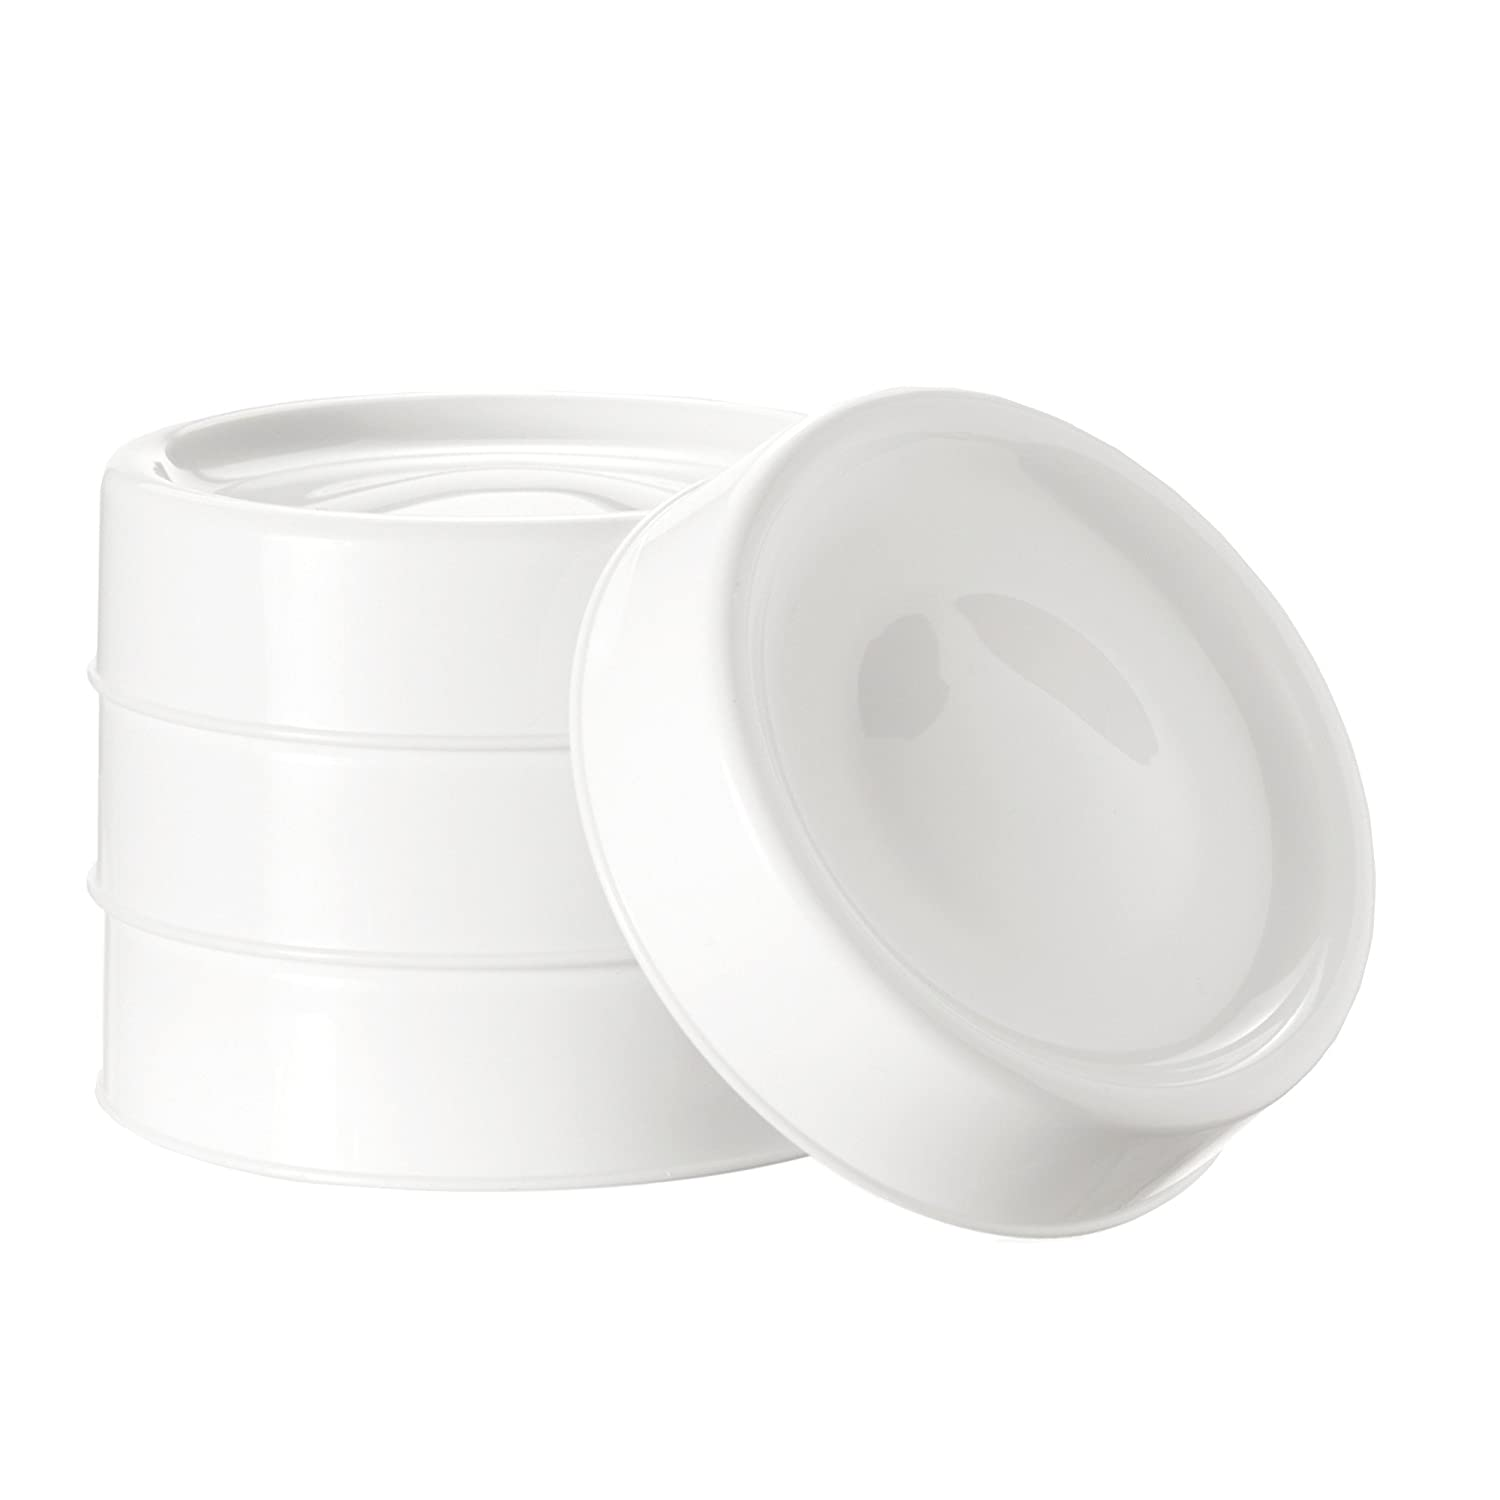 Tommee Tippee Closer To Nature 4x Milk Storage Lids BabyCentre 43136171